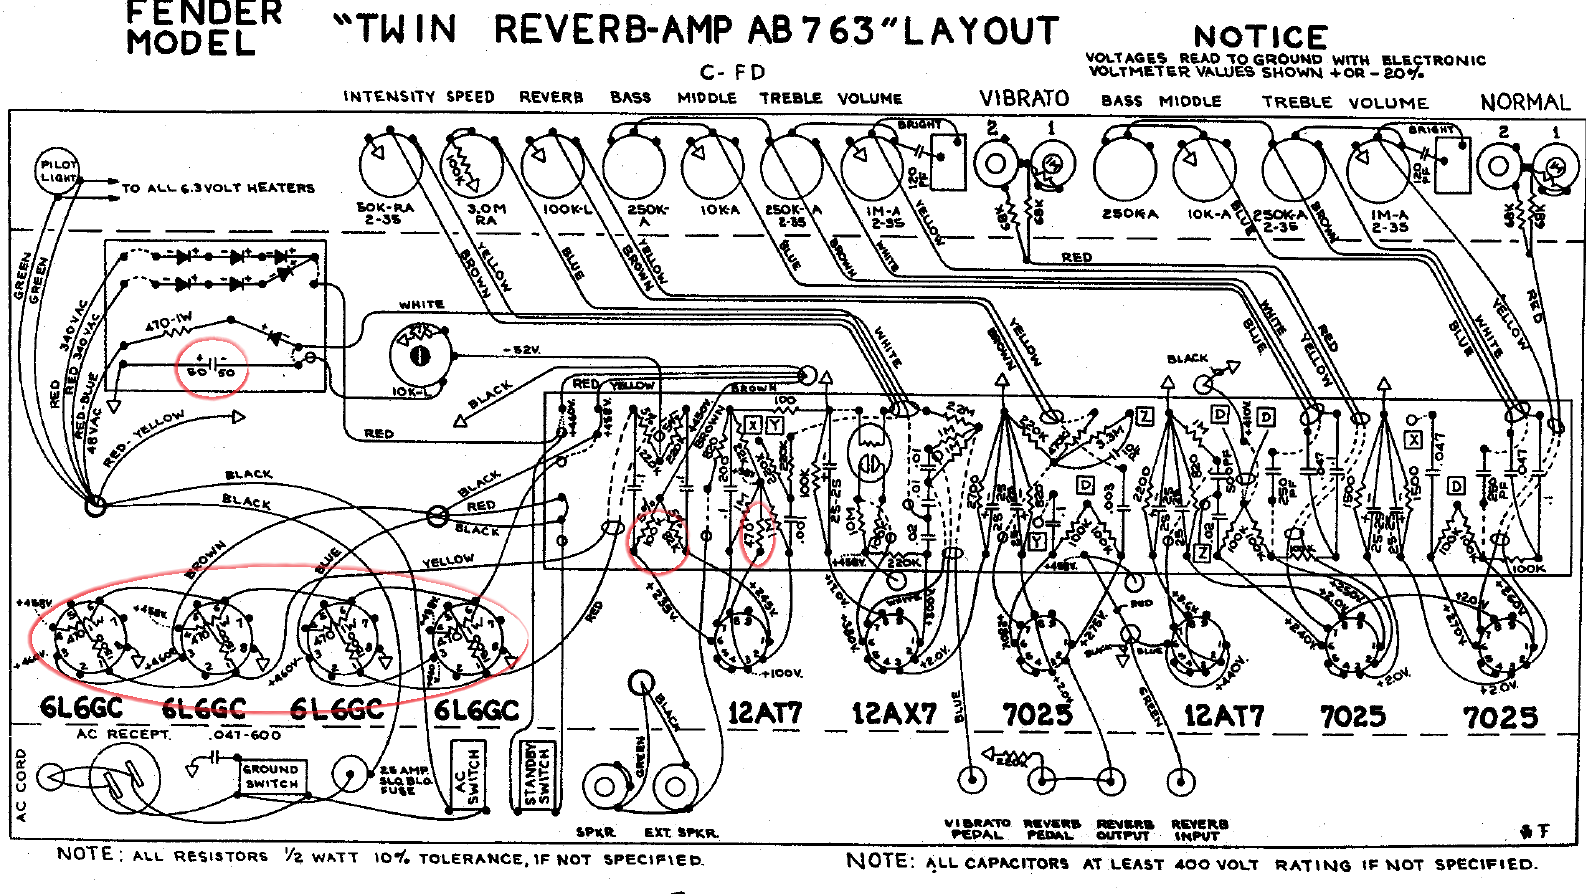 Twinreverb Ab763 Ac568 Layout With Images